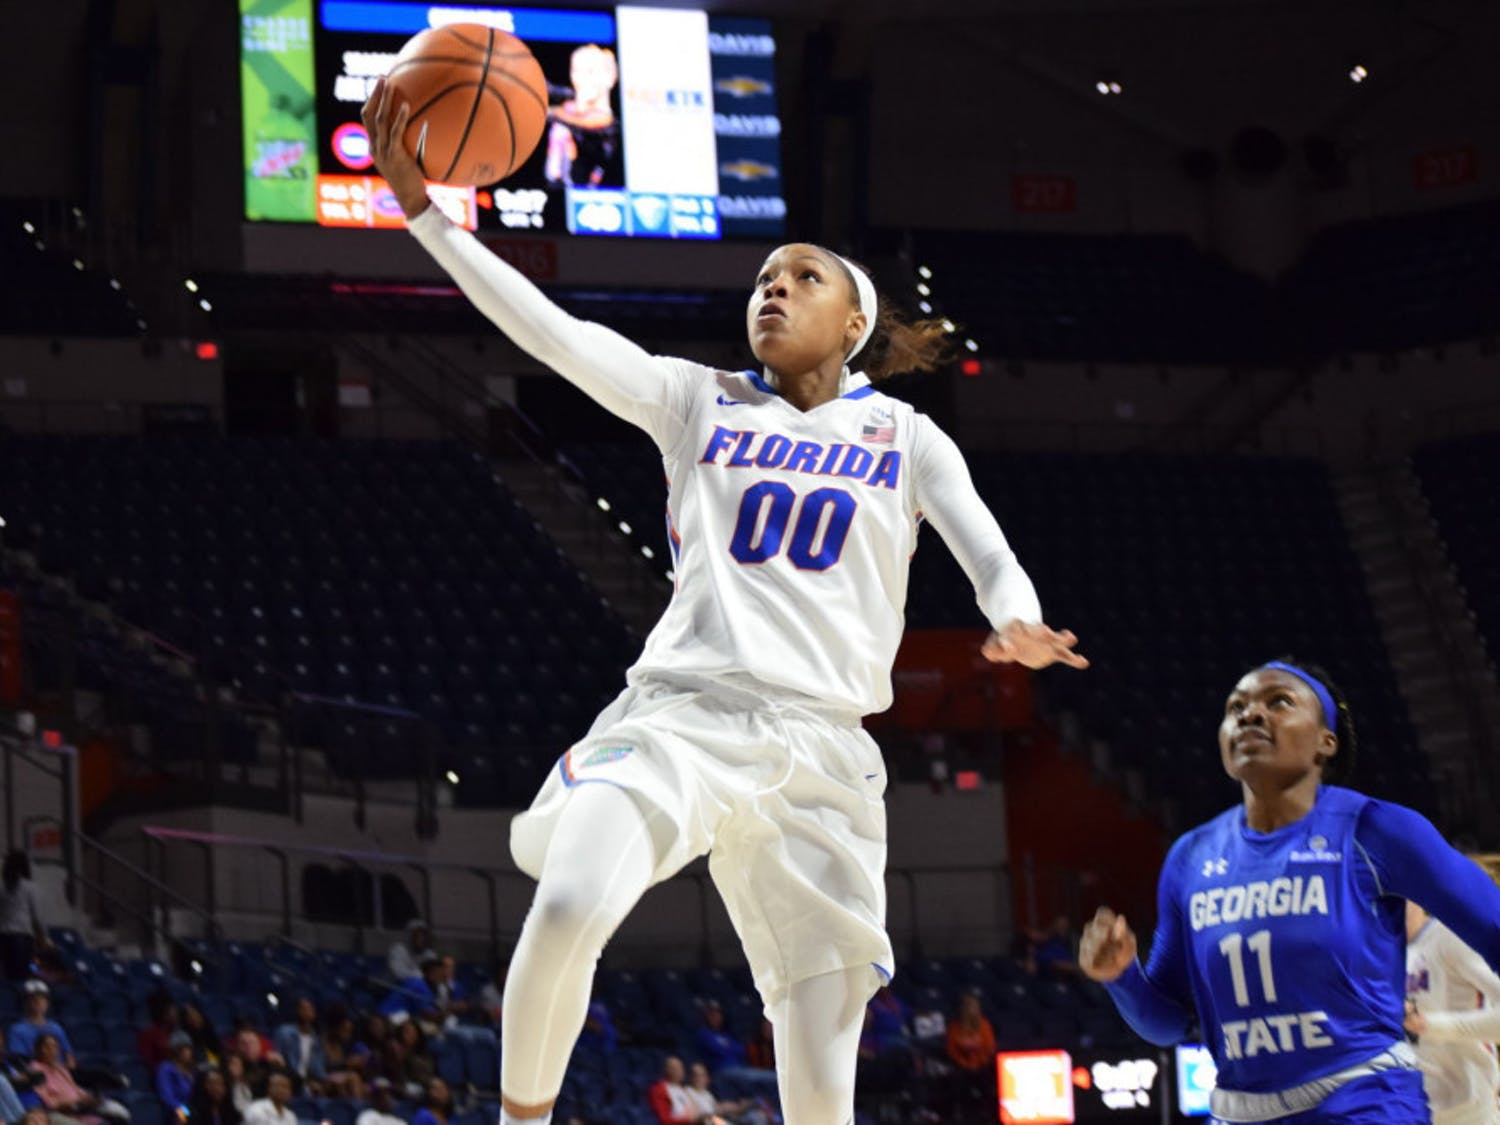 Guard Delicia Washington registered her second double-double of the season with 11 points and 10 rebounds in the Gators' win over FAMU.